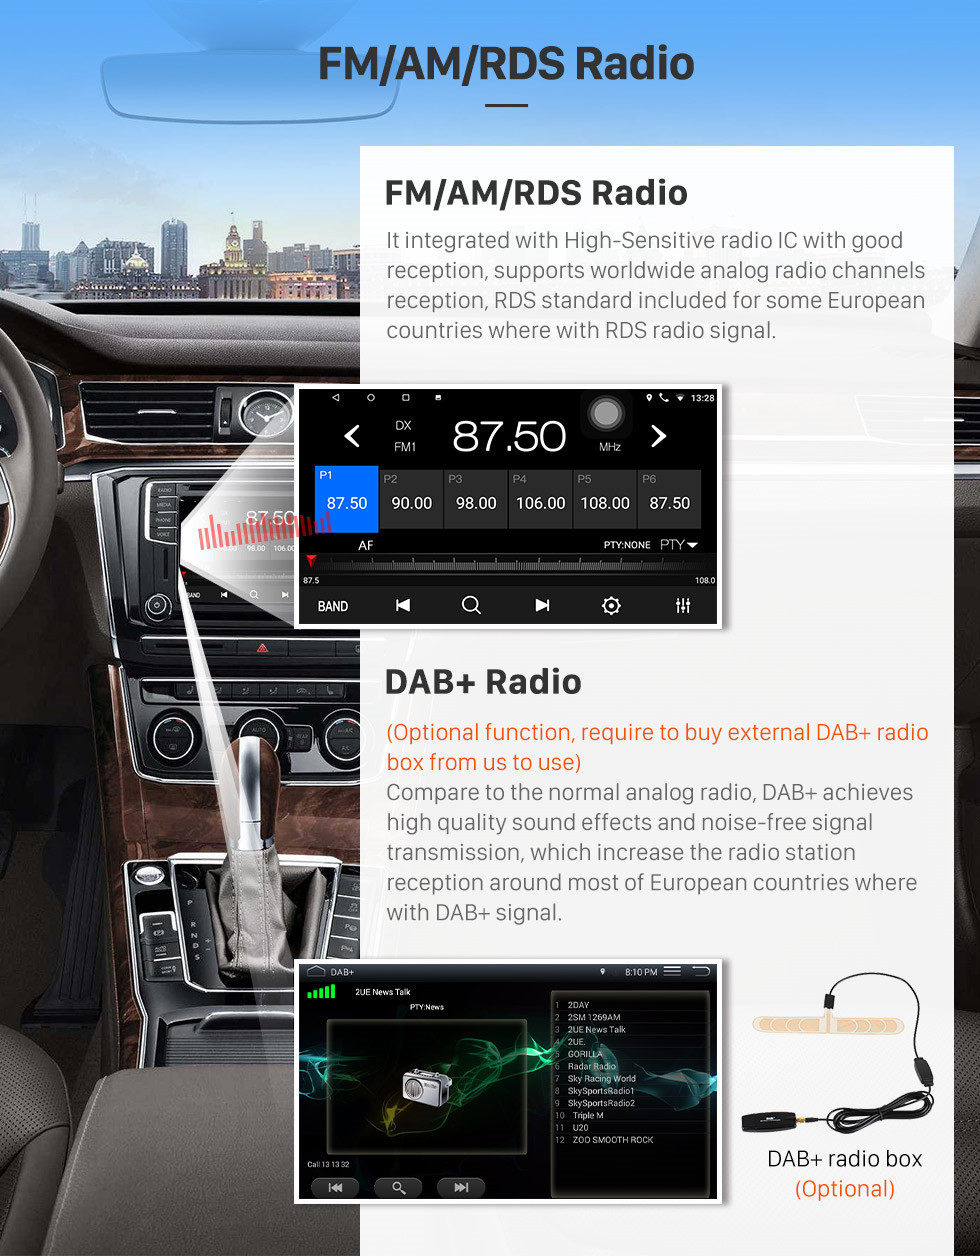 Seicane Cheap 9 inch Android 10.0 Radio GPS Navigition for 2018 Toyota Vios/Yaris Auto Air Conditioner 1024*600 Touchscreen Quad-core Bluetooth support DVR 3G WIFI OBD2 Rearview Camera